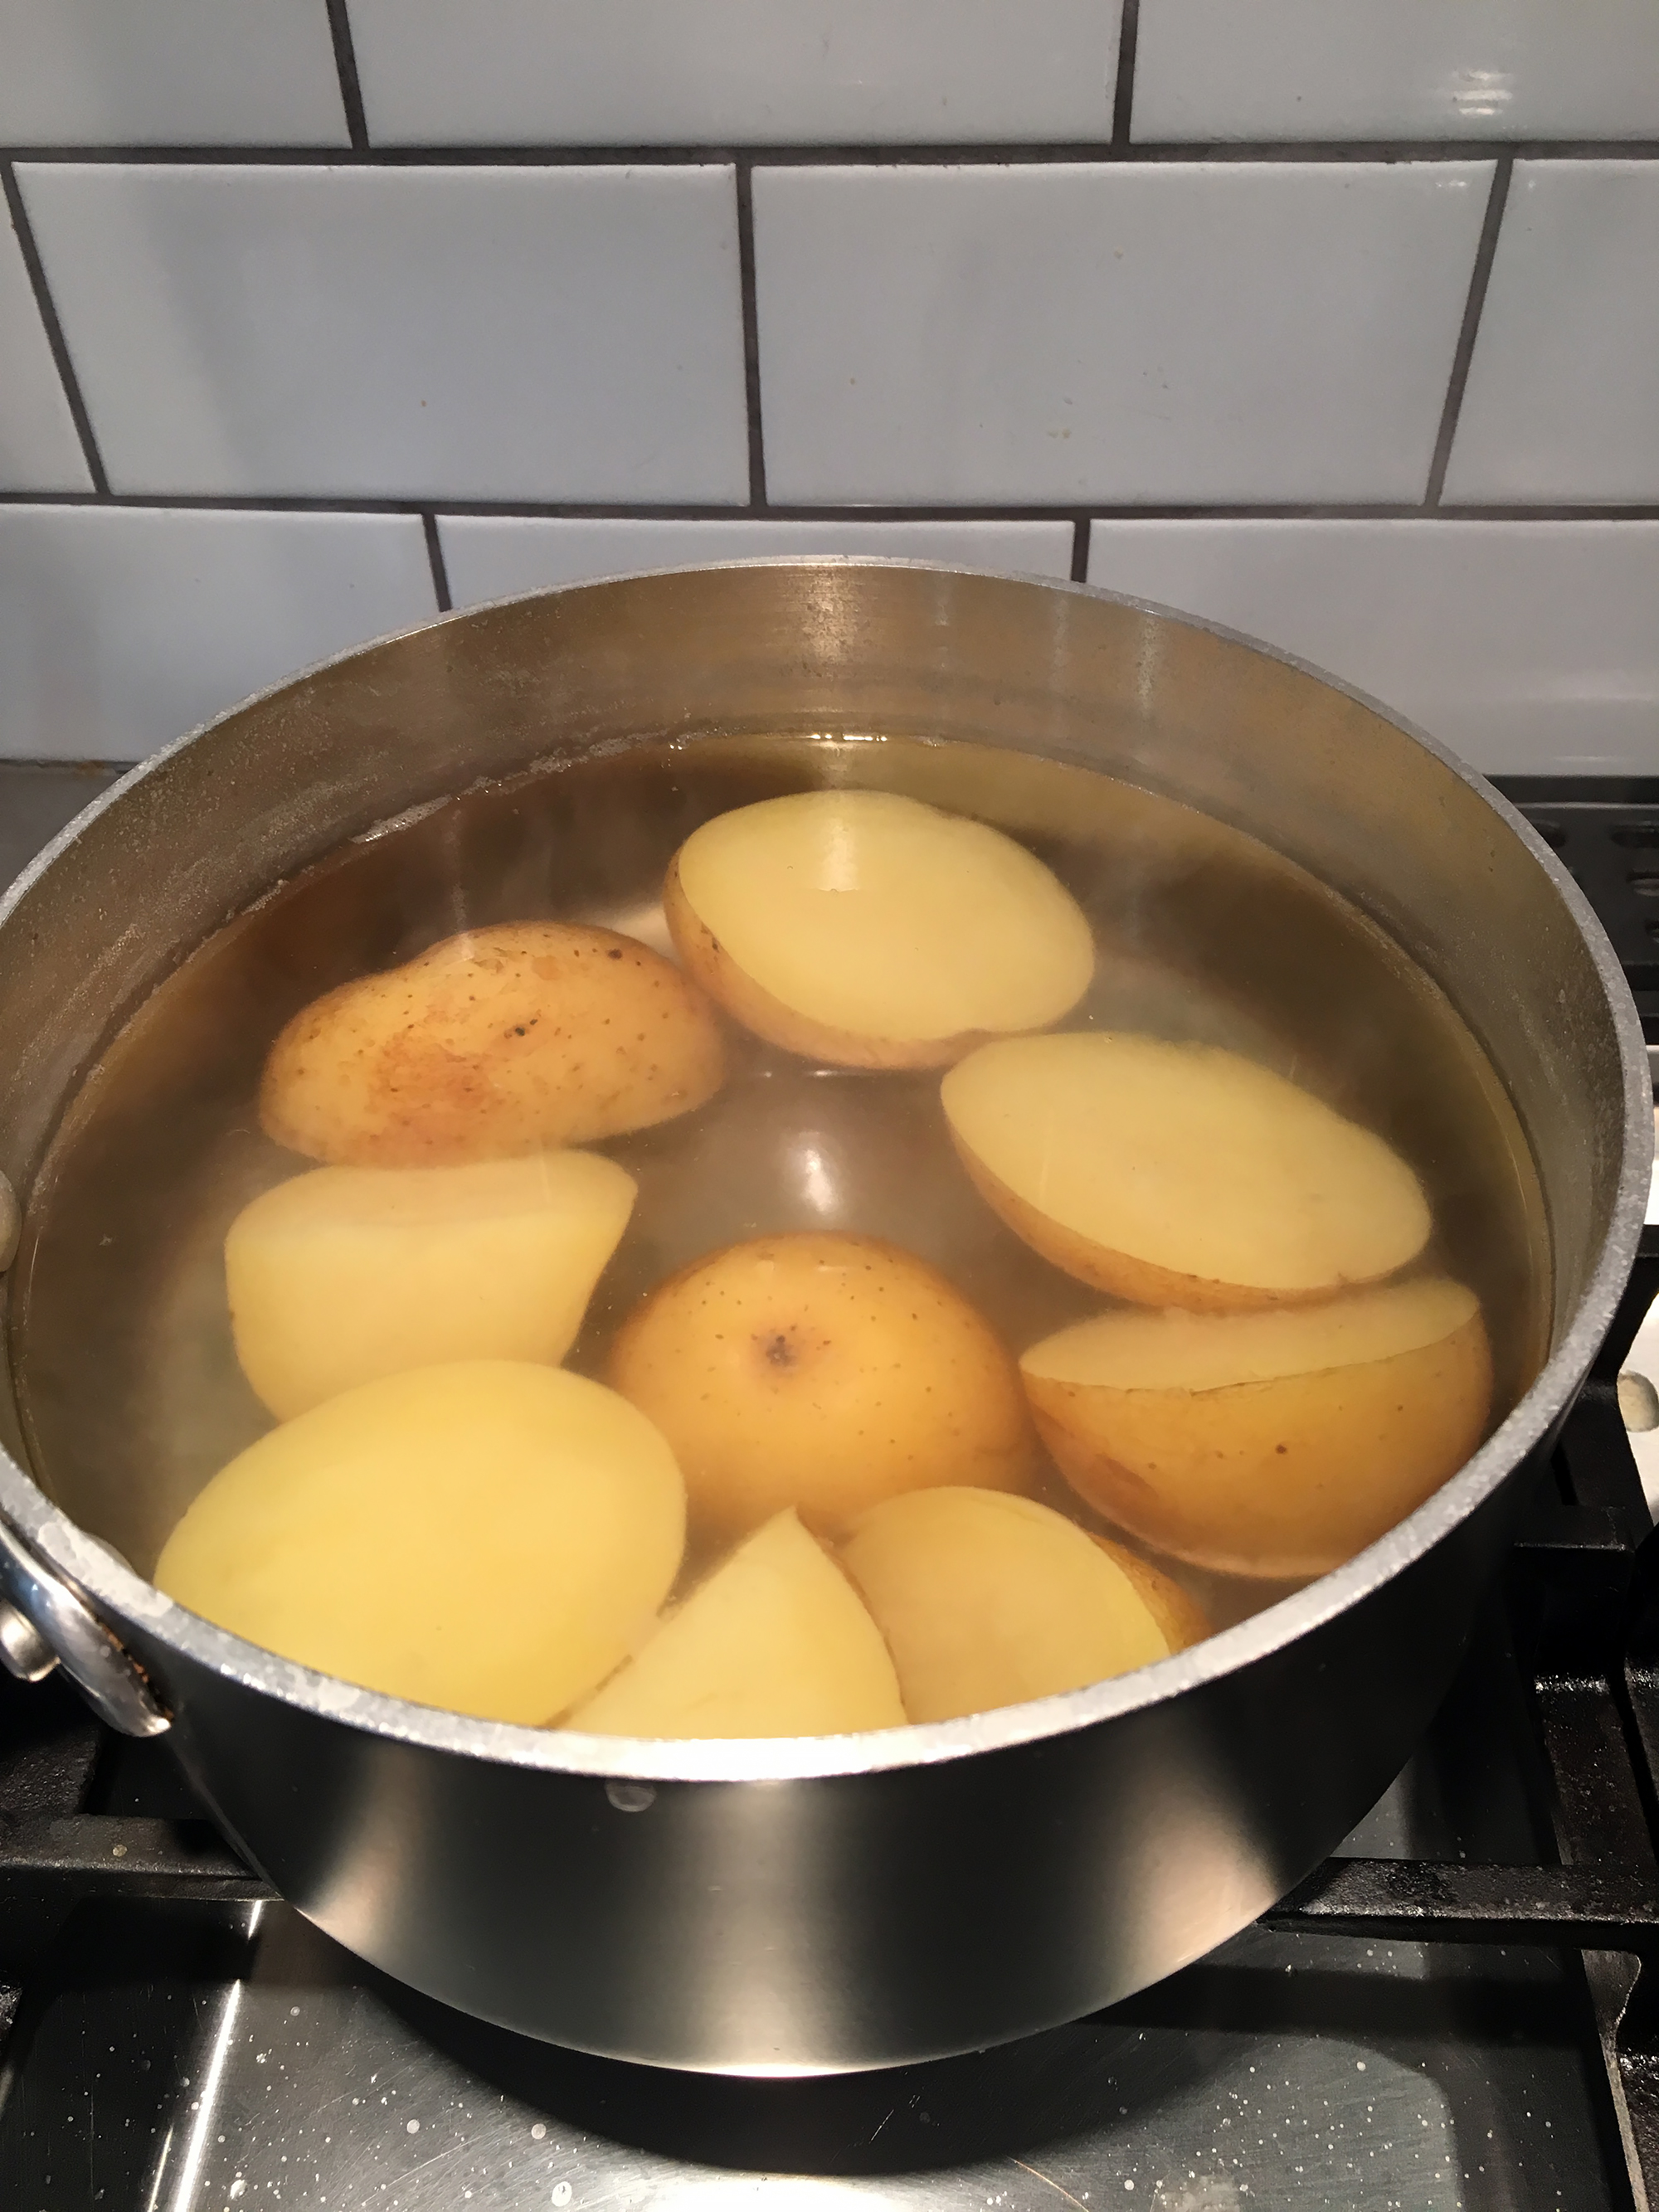 Put the potatoes in a saucepan with cold water to cover, add a few teaspoons kosher salt, then bring to a boil over medium-high heat. Reduce the heat to medium-low to maintain a simmer and cook until tender, about 20 minutes.